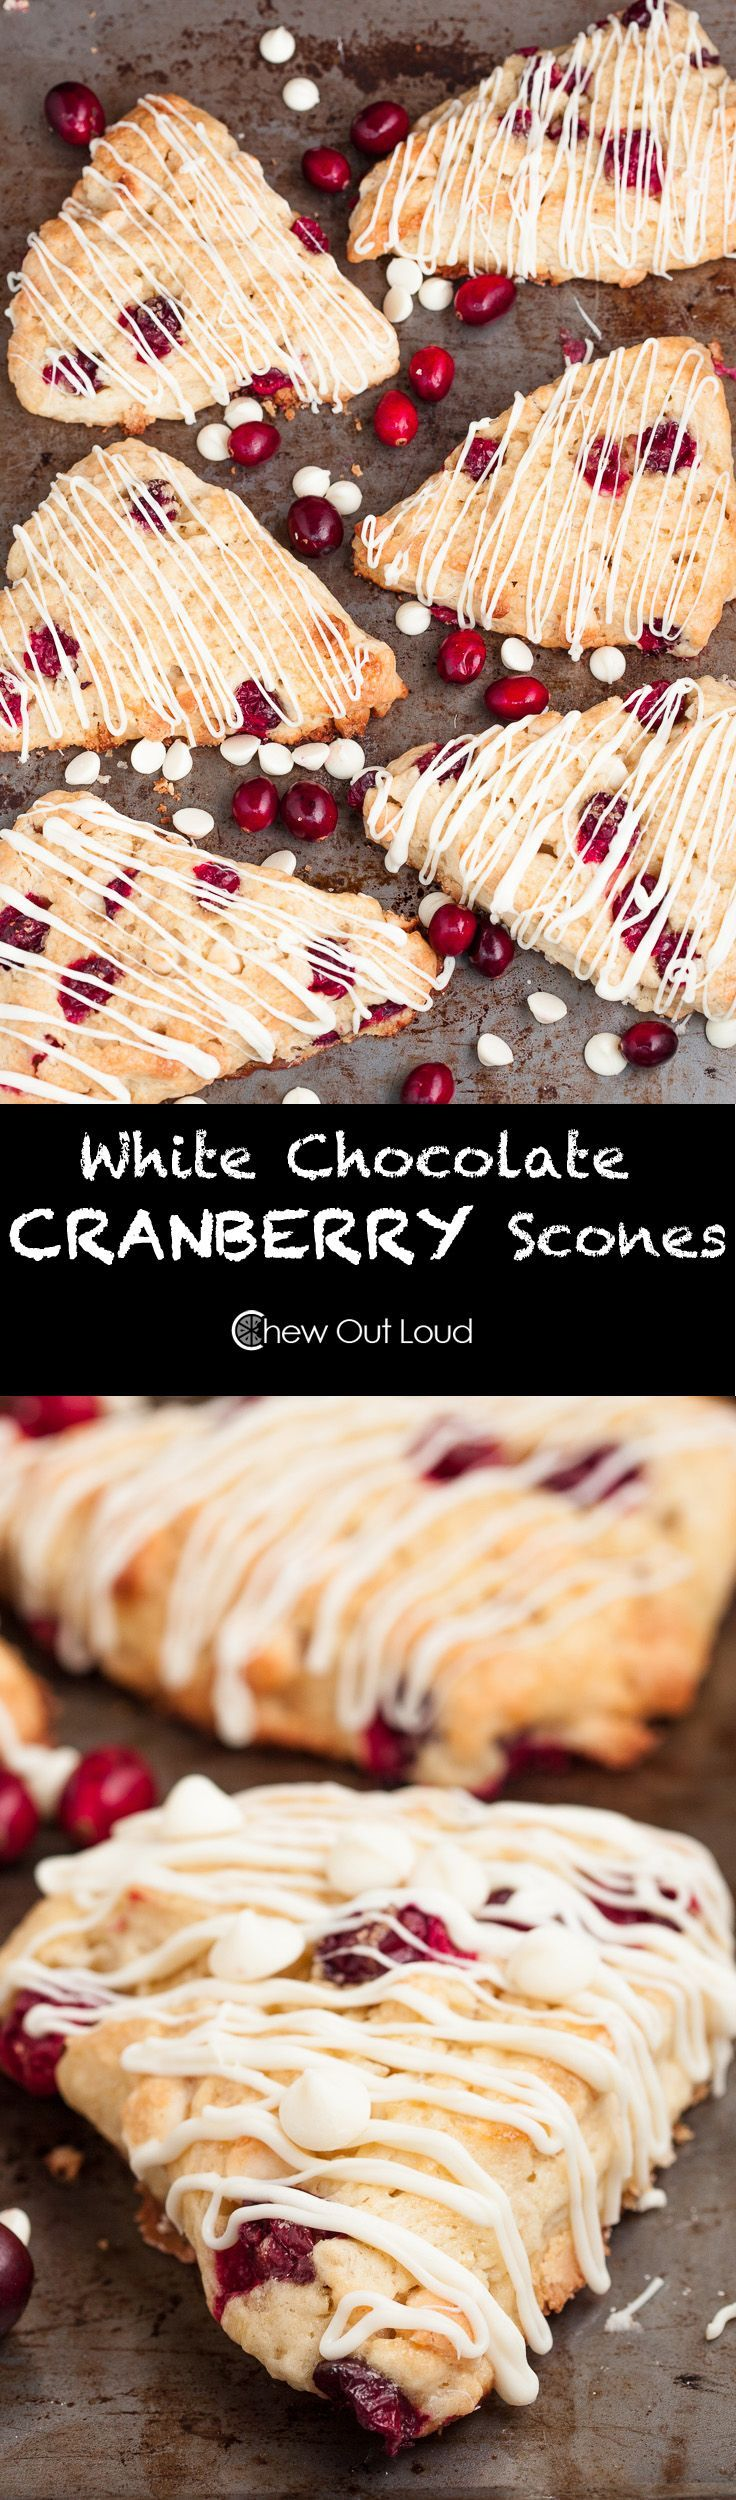 White Chocolate Cranberry Scones Recipe - With FRESH cranberries!  Moist and super festive for the holidays.  Christmas breakfast, brunch, or gifts.